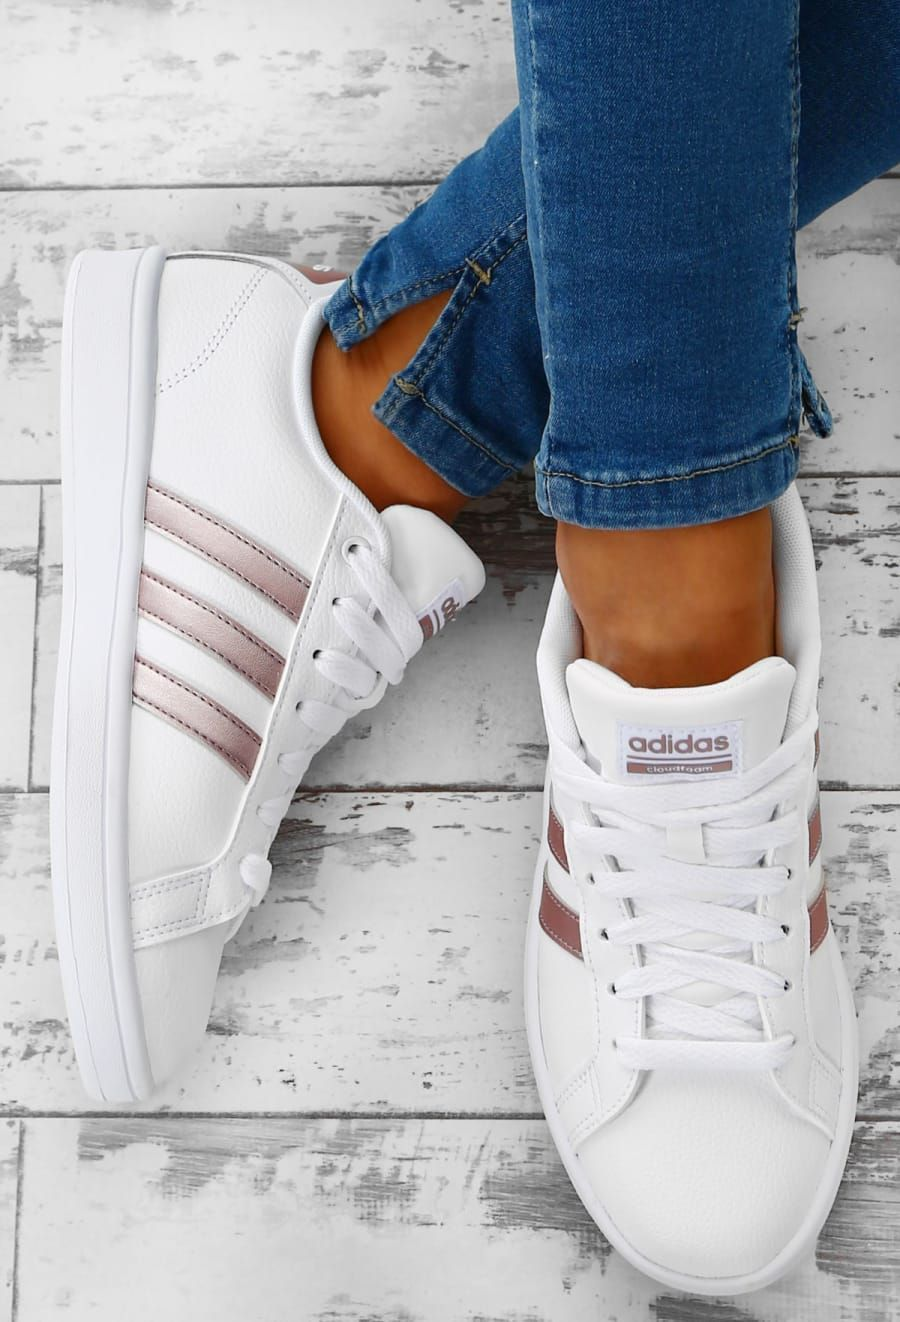 finest selection ae3c7 a9540 Adidas Cloudfoam Advantage White and Rose Gold Stripe Trainers   Pink  Boutique